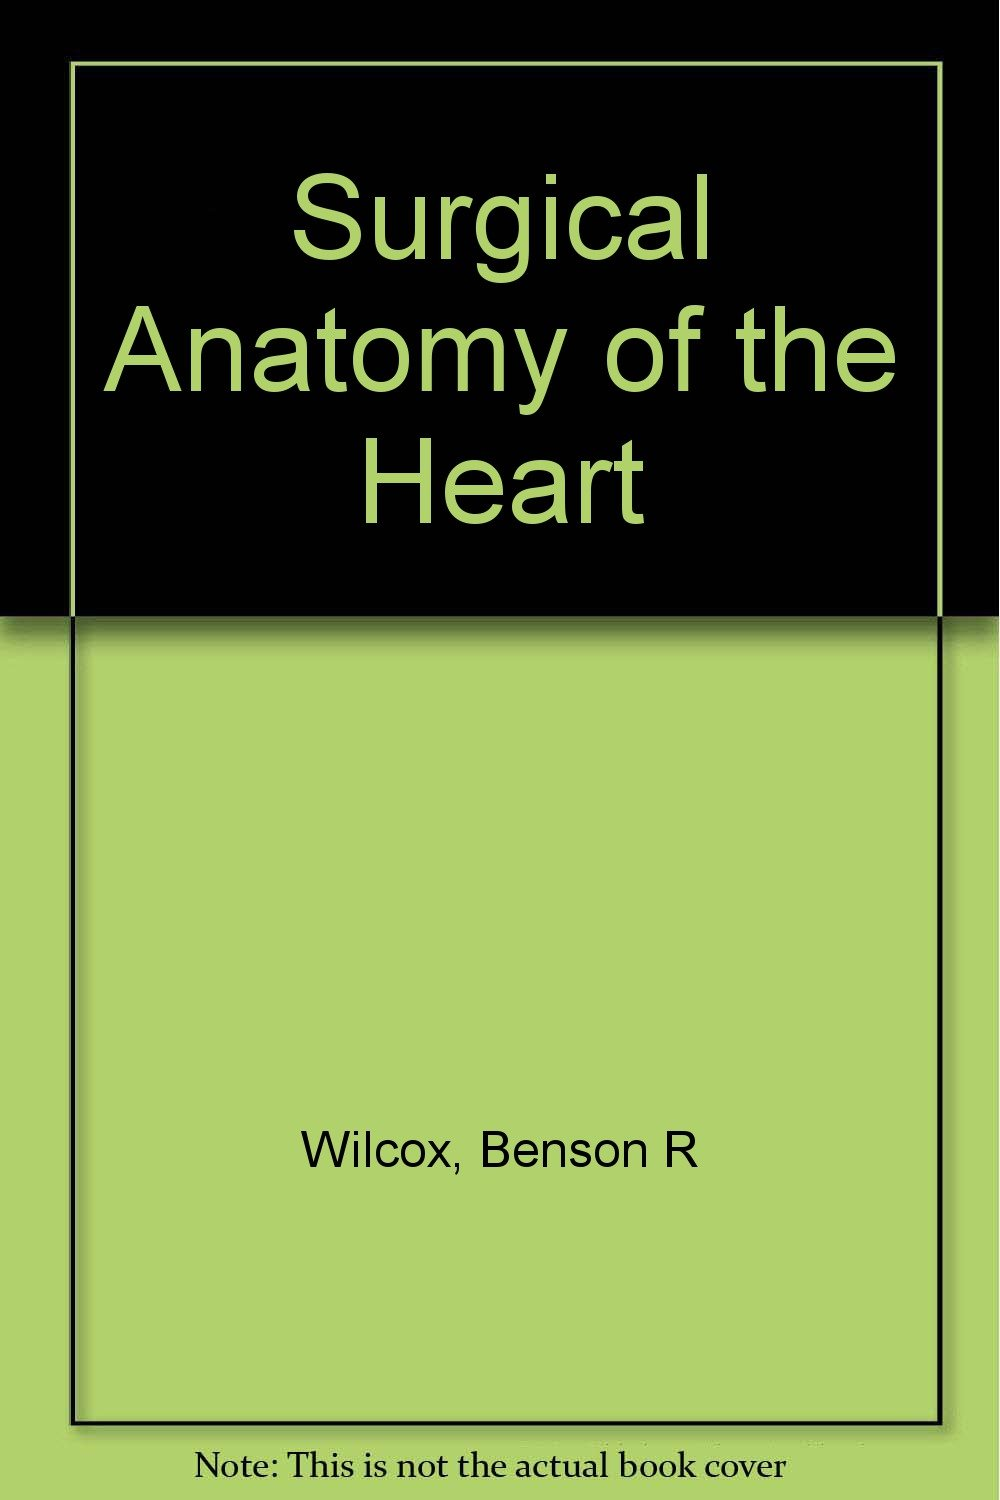 Surgical Anatomy of the Heart: 9780881671032: Amazon.com: Books